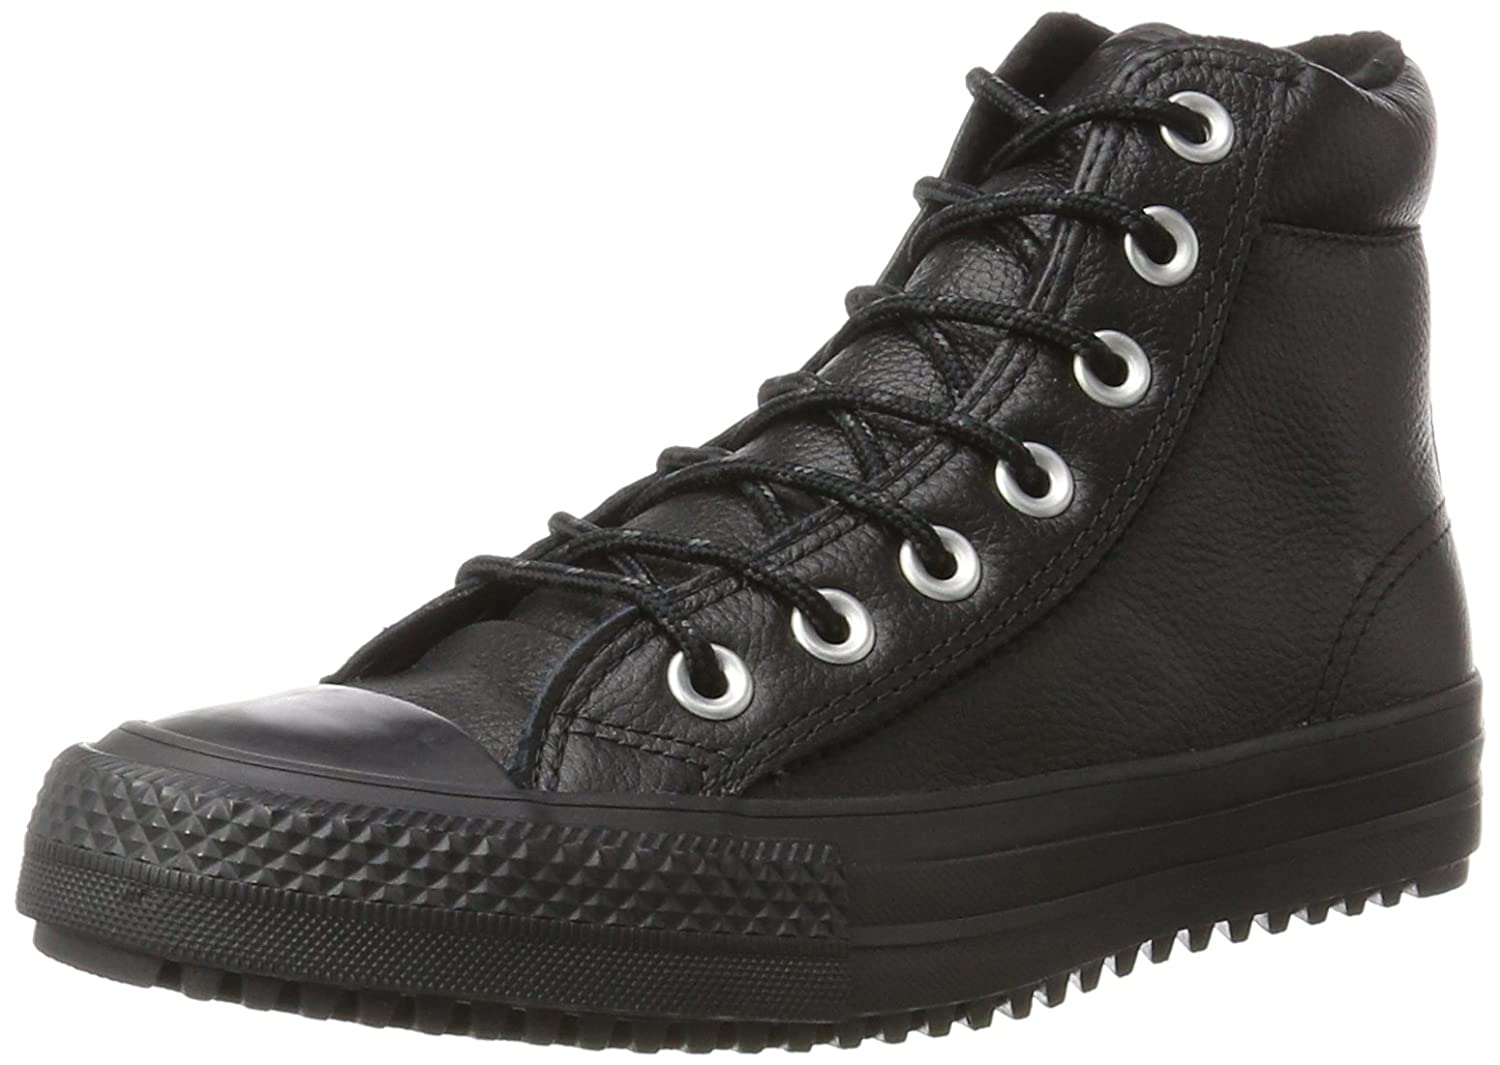 a1d33ee4436940 Amazon.com  Converse Men s CT All Star Leather Boots